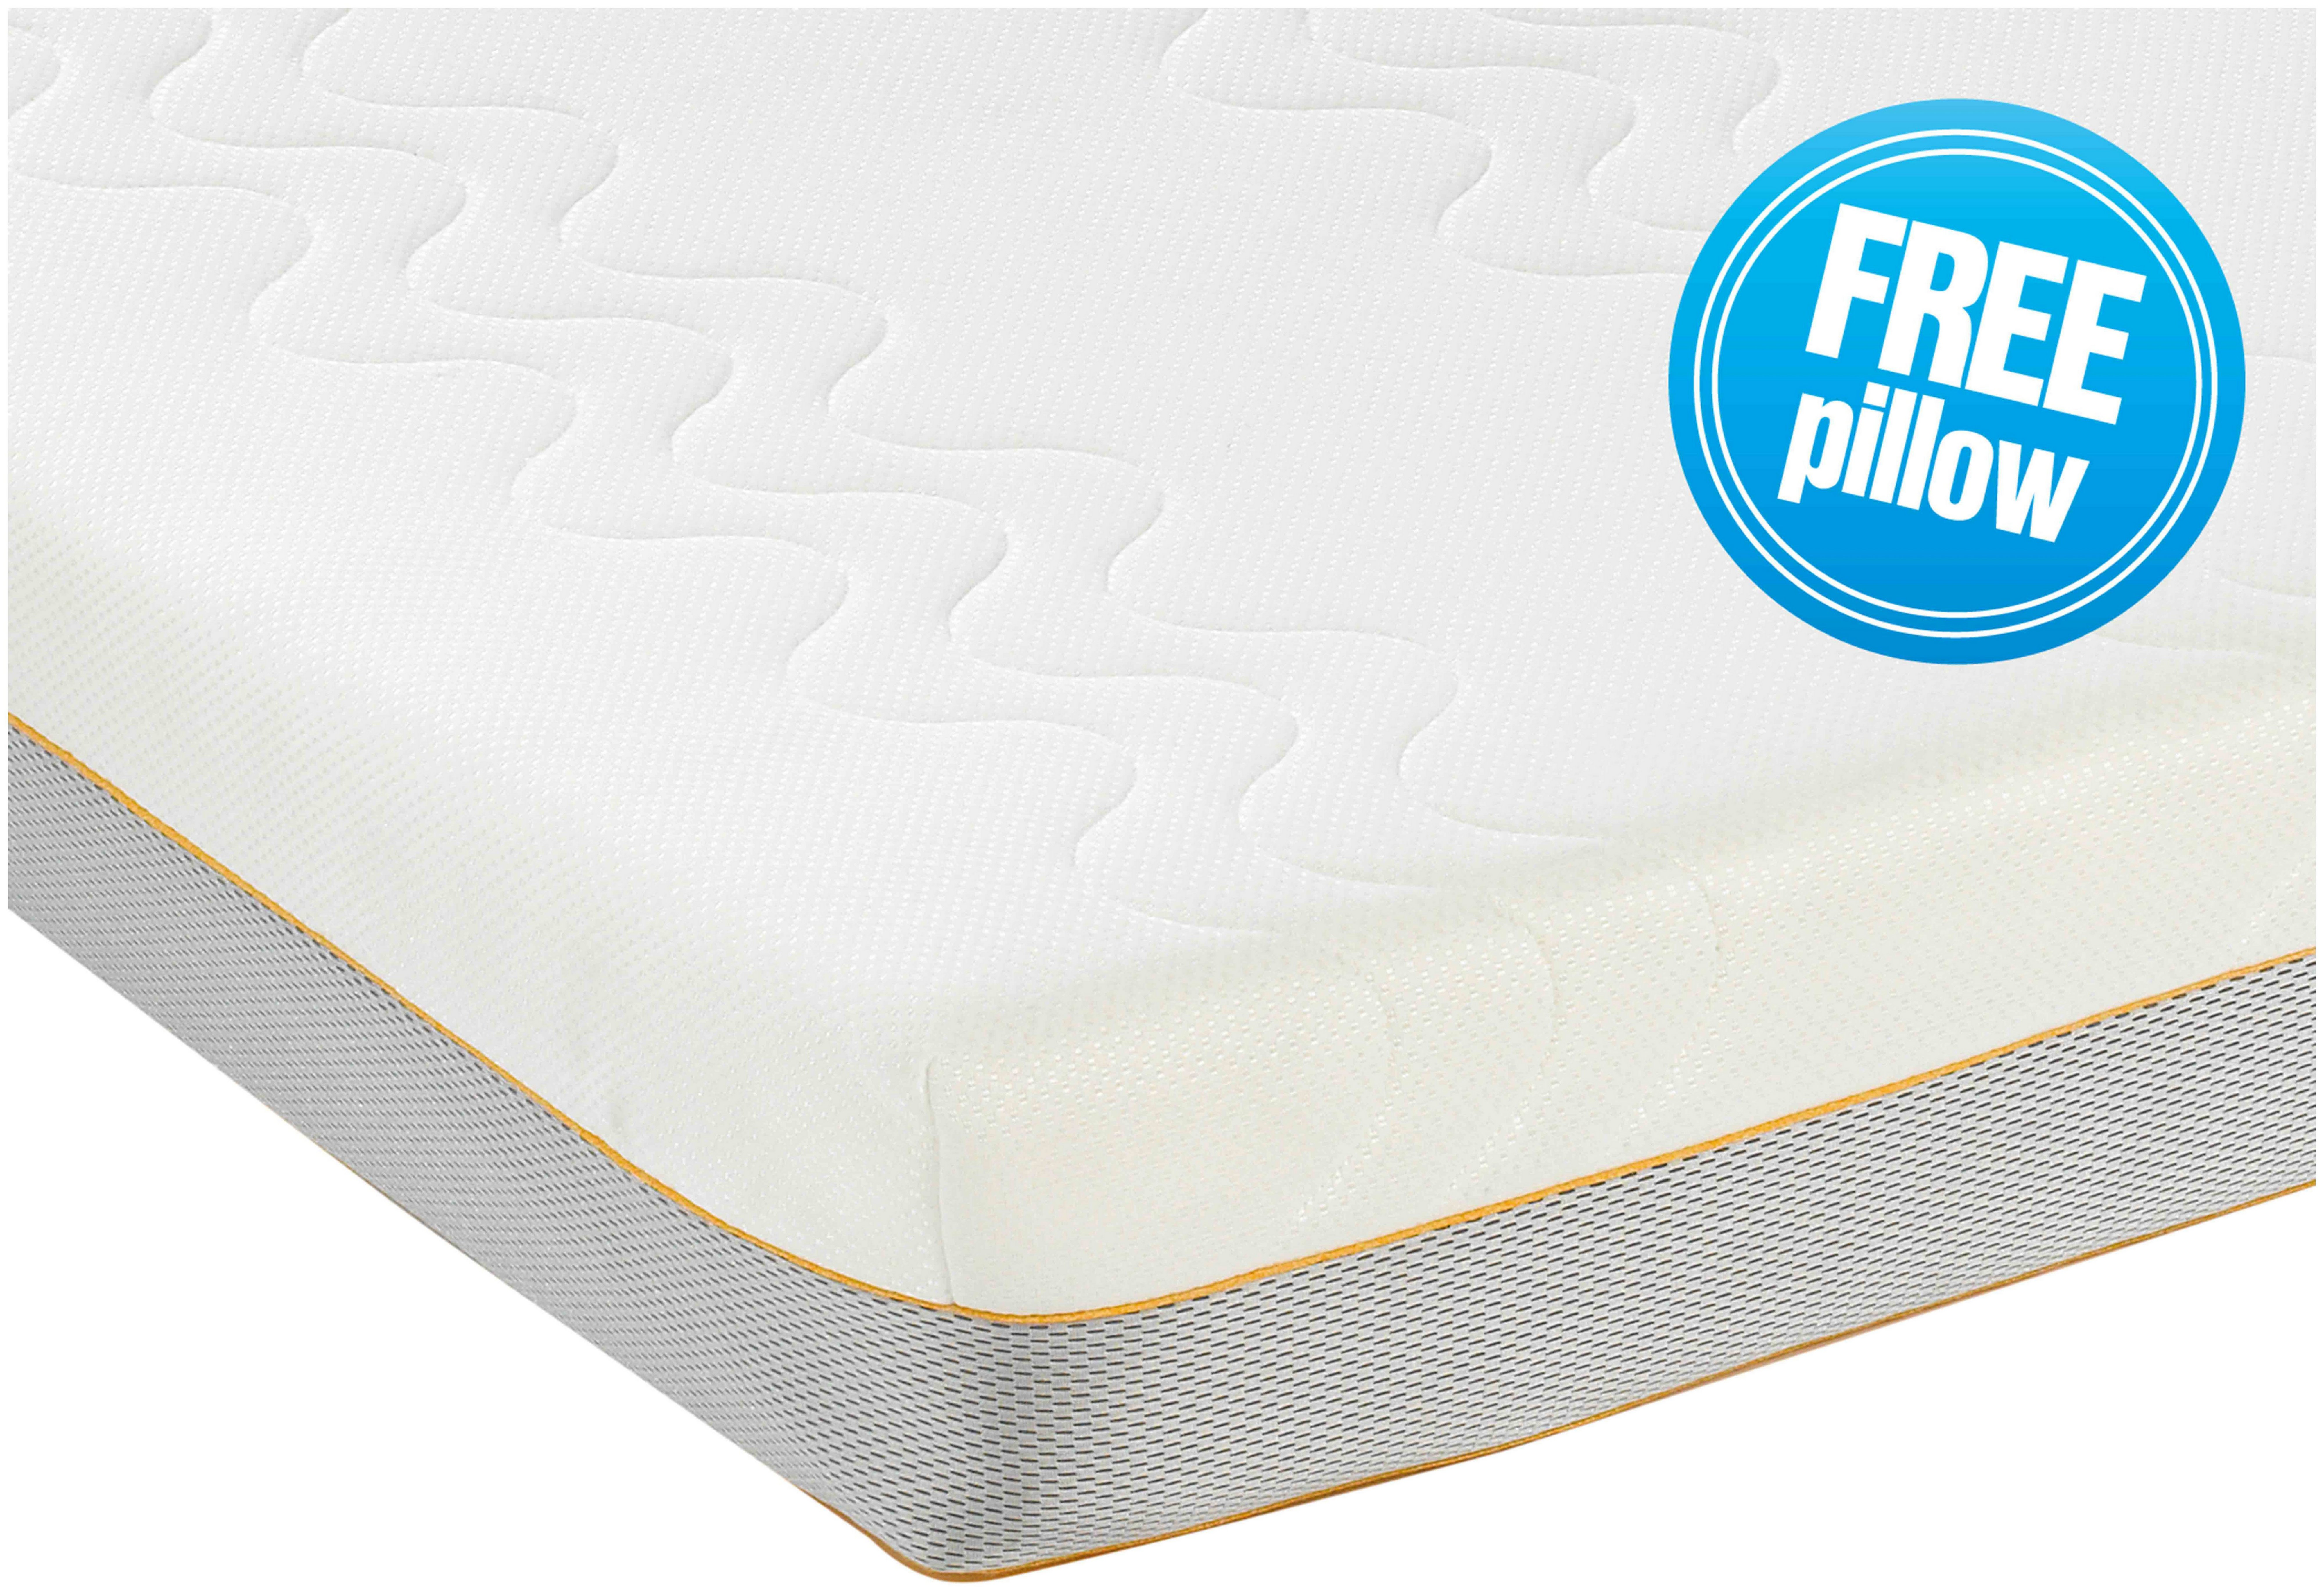 Dormeo maui options spring double mattress.